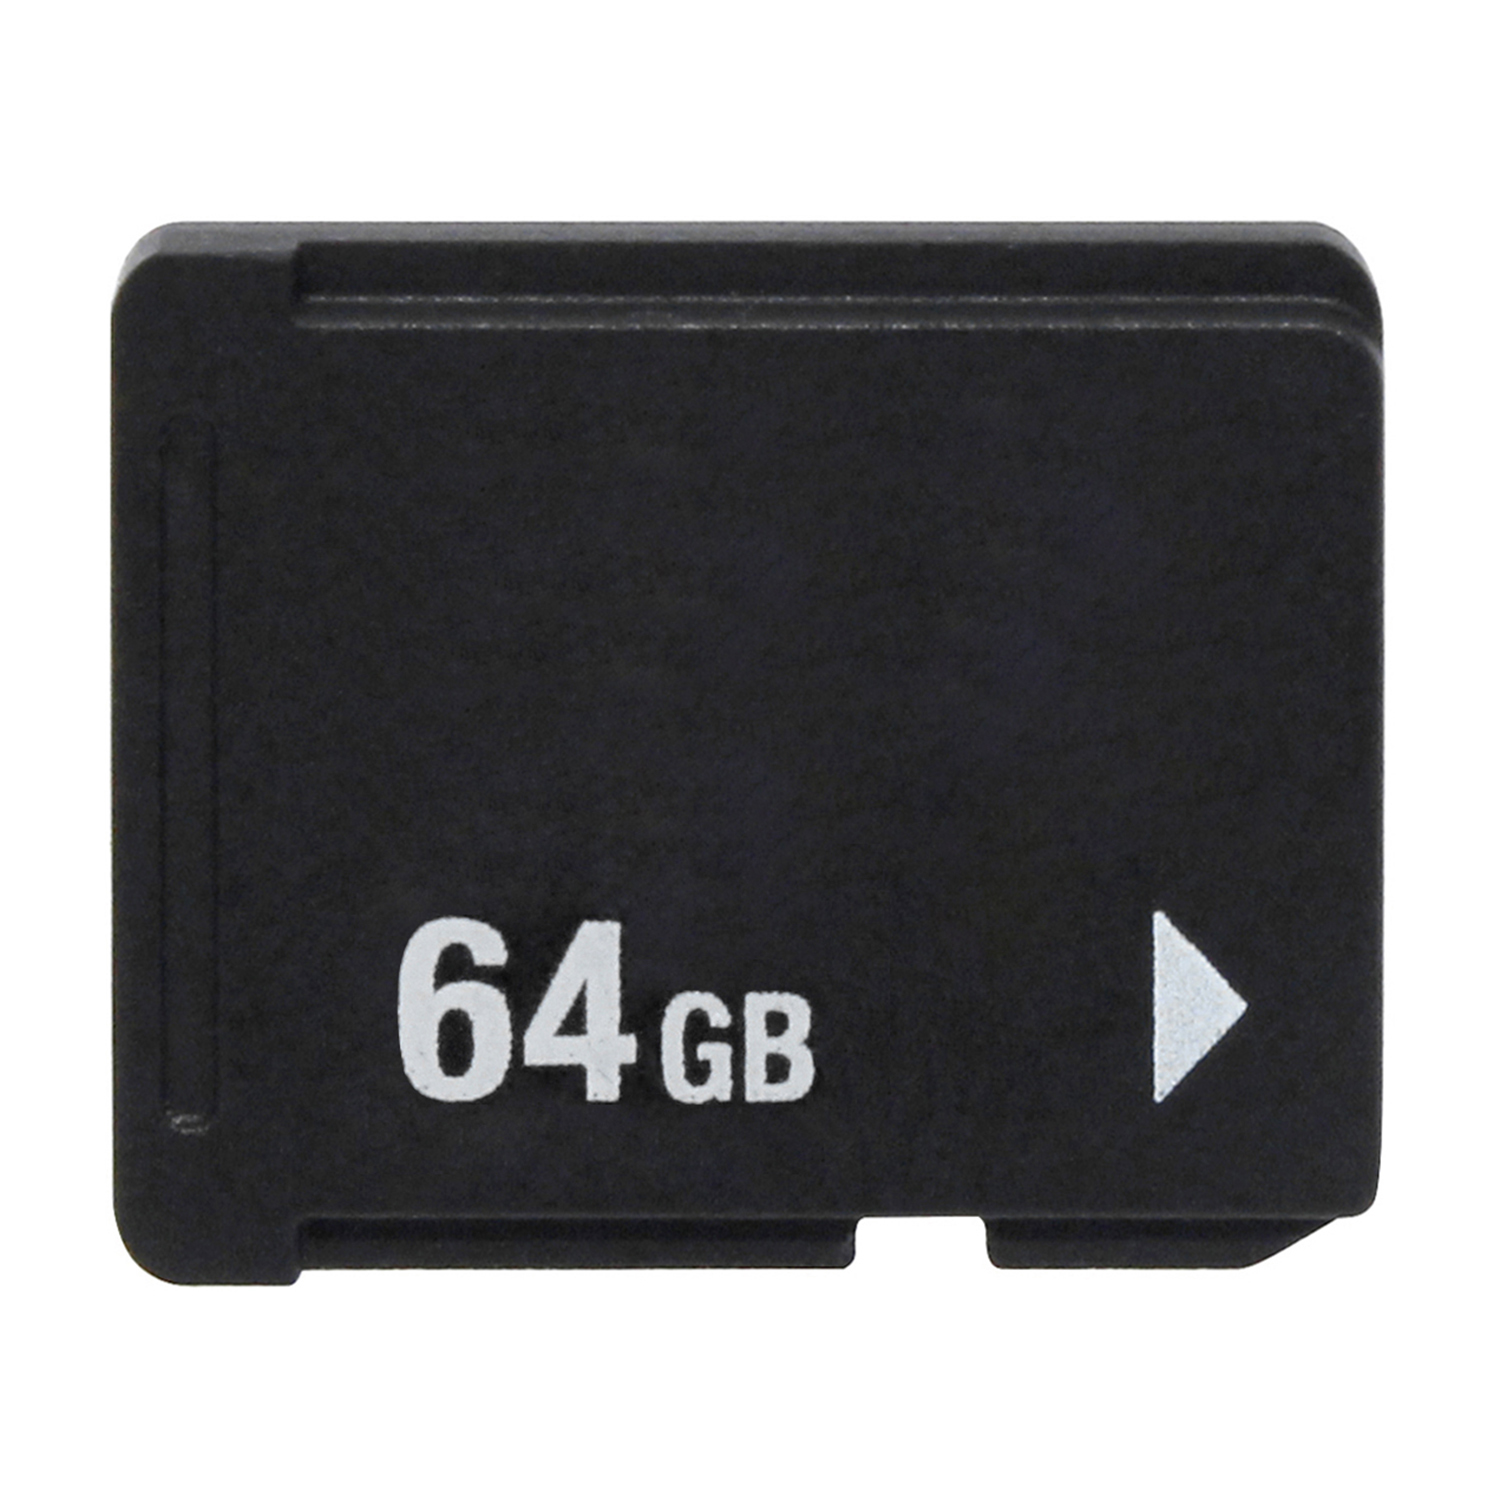 OSTENT 8/16/32/64GB Memory Card Stick Storage For Sony PS Vita PSV1000/2000 PCH-Z081/Z161/Z321/Z641